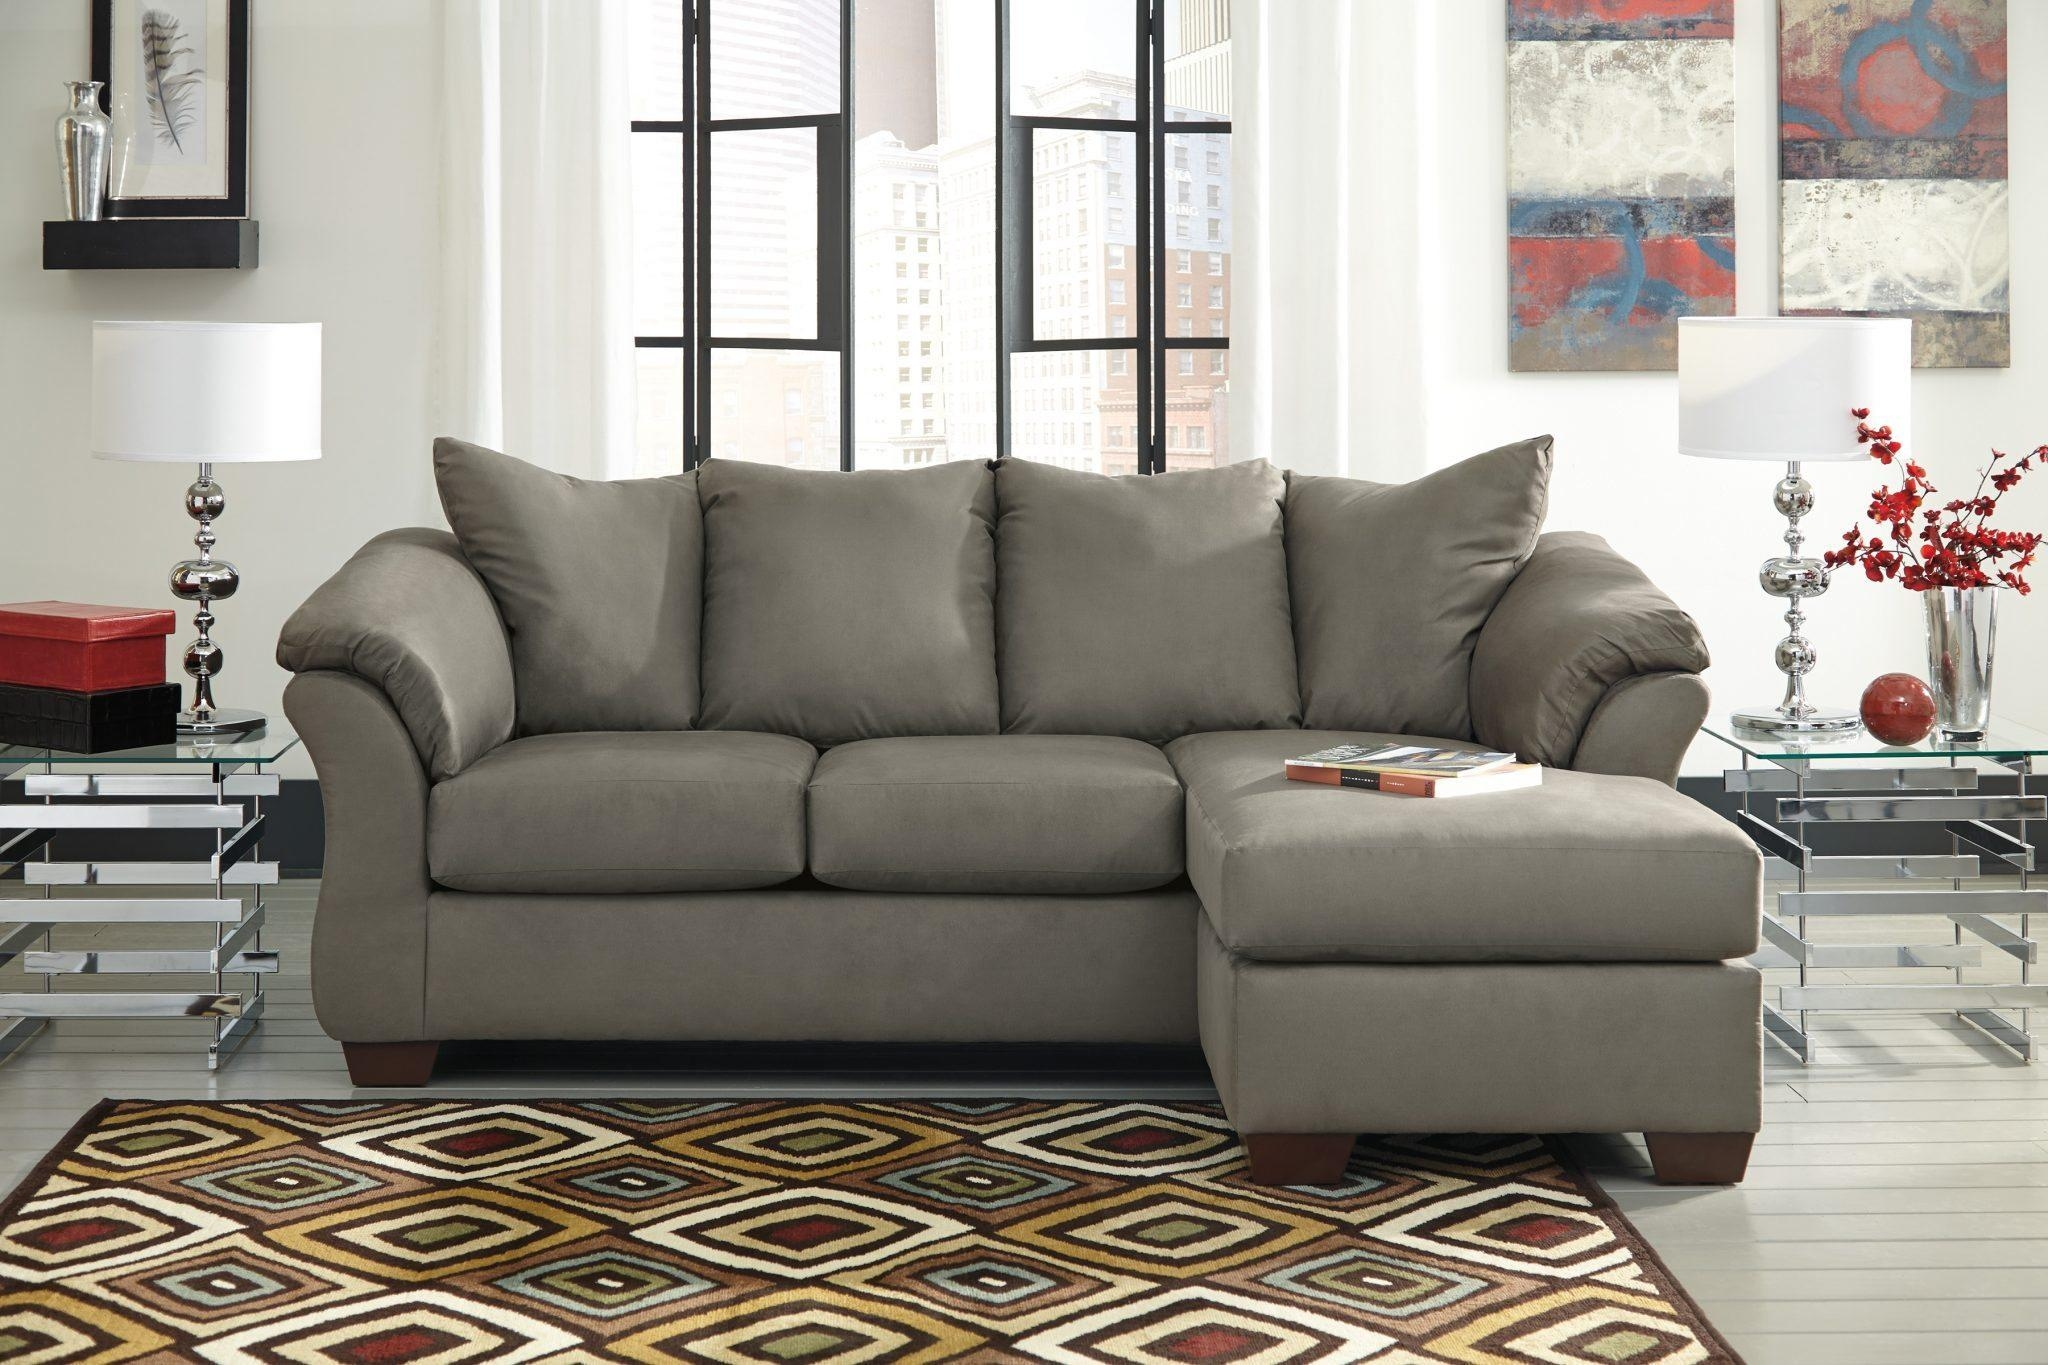 Best Furniture Mentor Oh: Furniture Store – Ashley Furniture With Regard To Chaise Sofa Chairs (View 16 of 20)